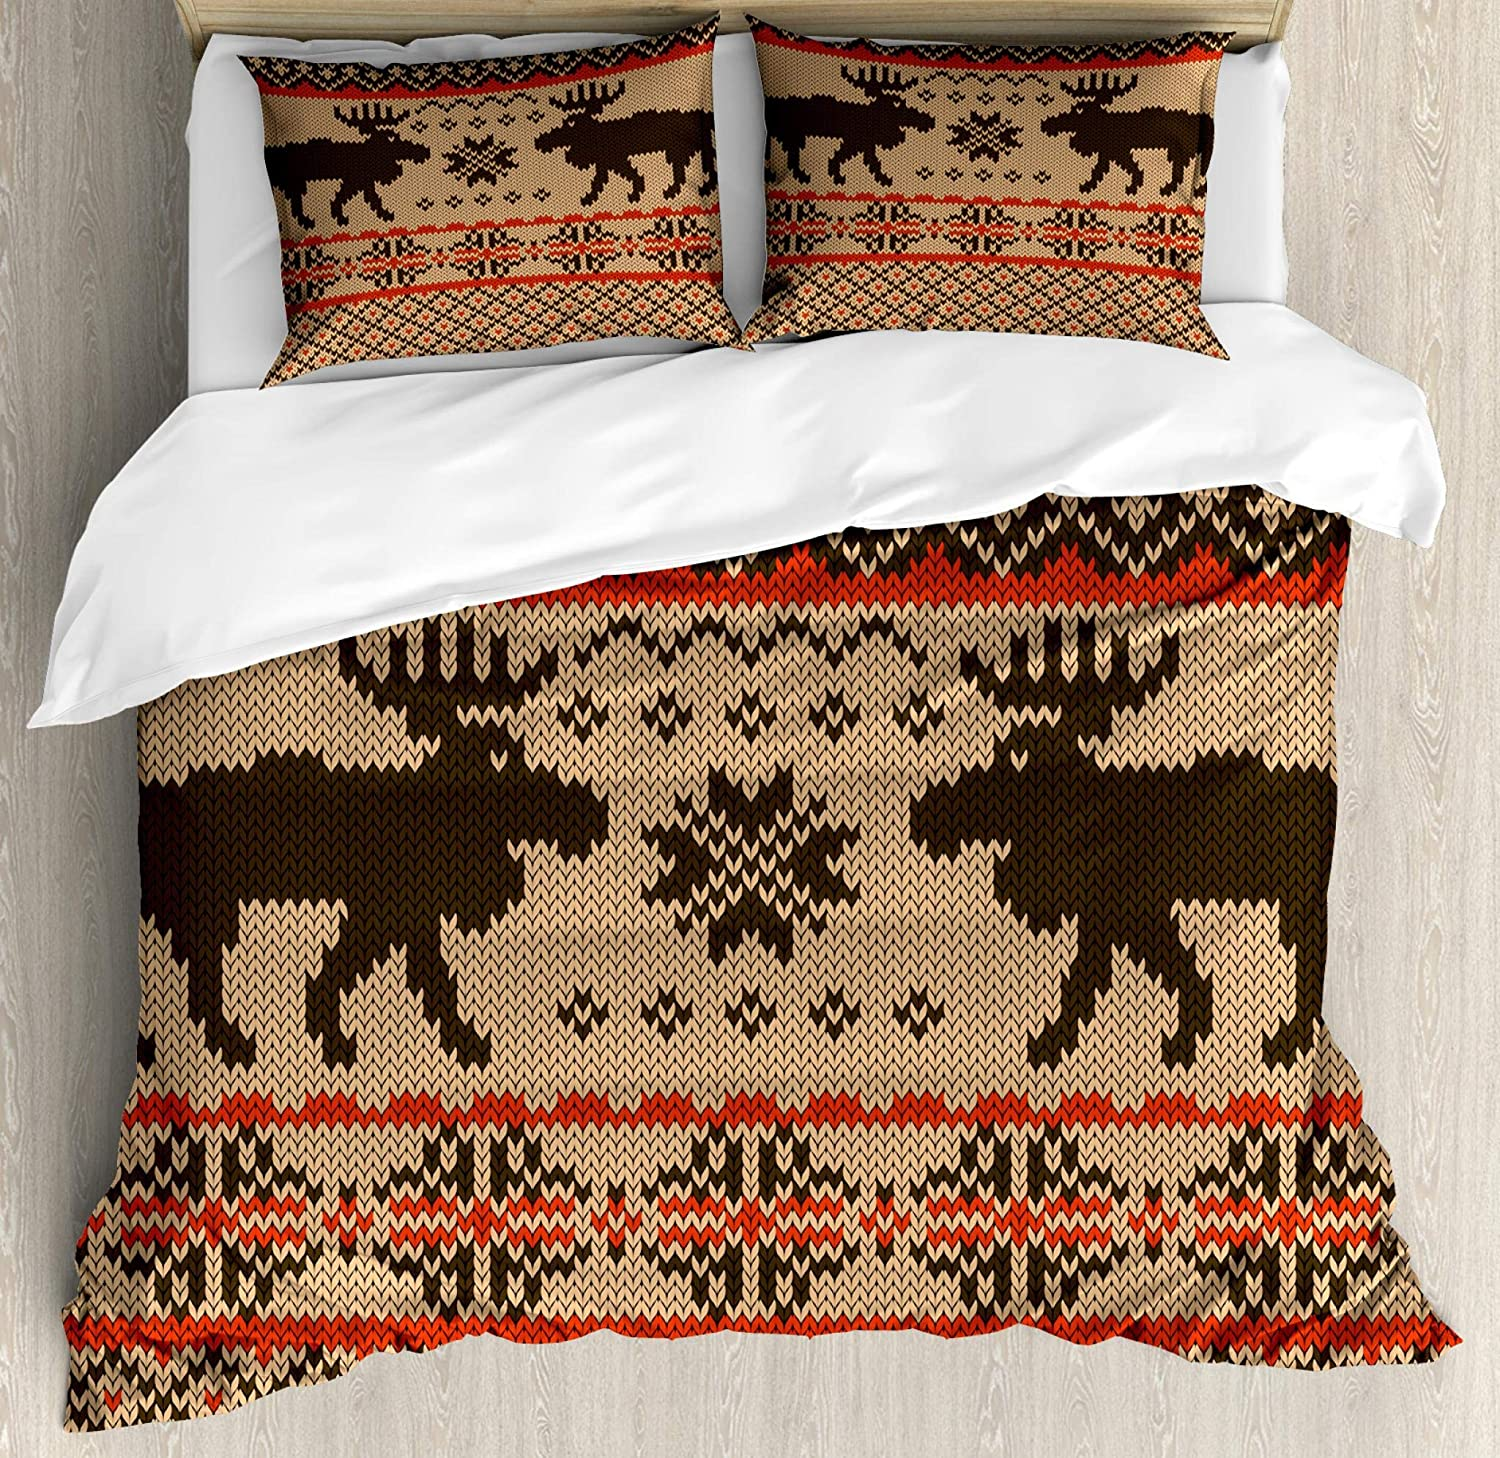 Ambesonne Cabin Duvet Cover Set, Knitted Swatch with Deers and Snowflakes Classical Country Plaid Digital, Decorative 3 Piece Bedding Set with 2 Pillow Shams, King Size, Vermilion Brown